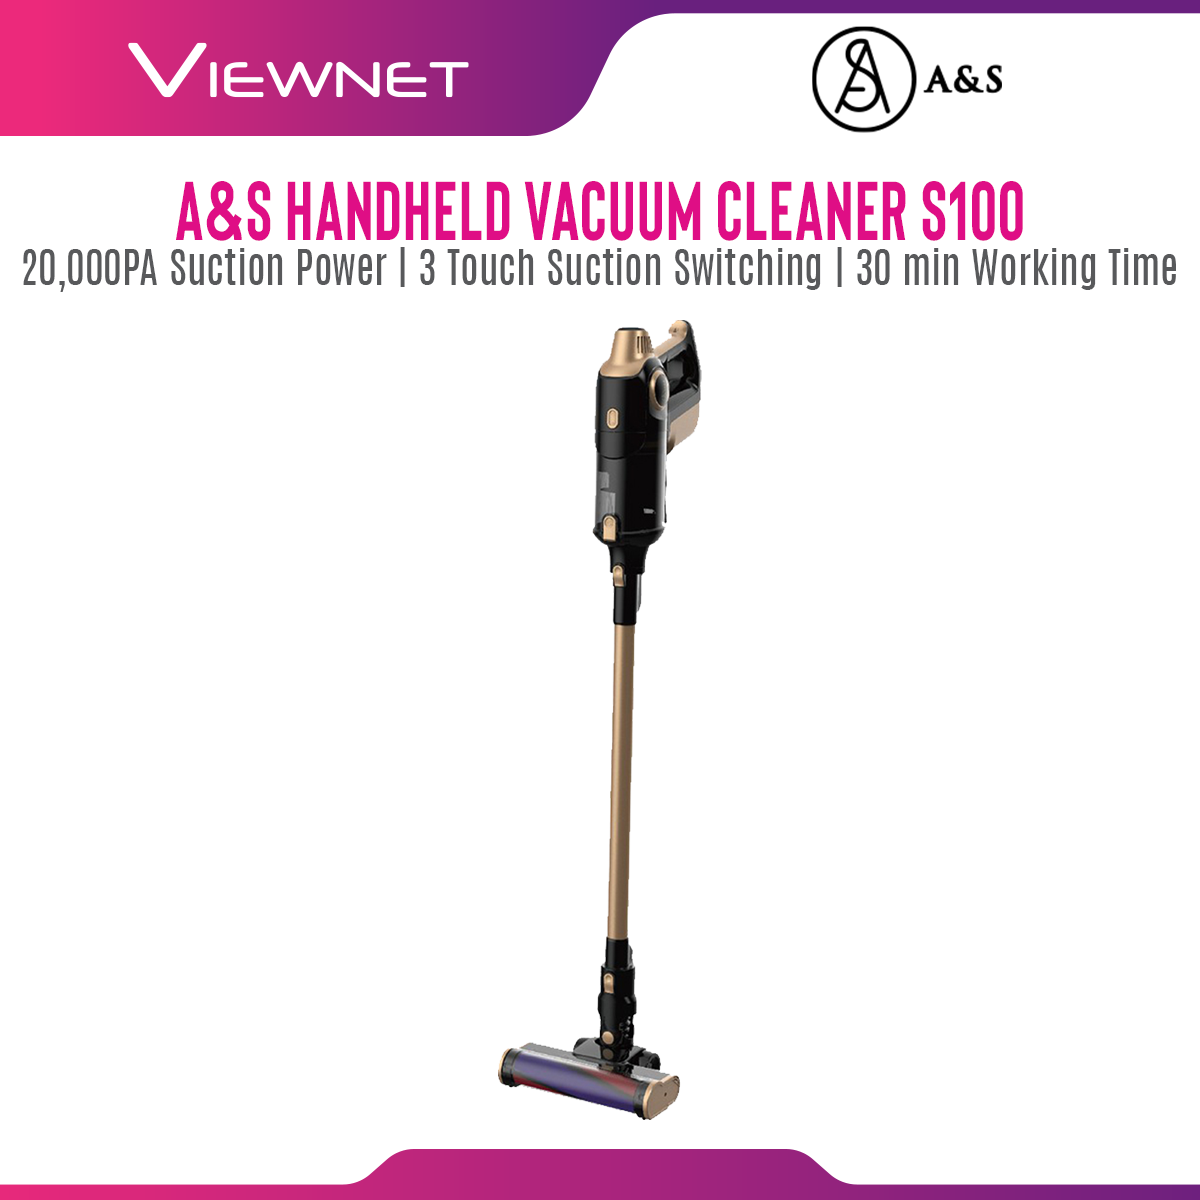 A&S S100 Handheld Handy Cordless Vacuum Cleaner with 20,000PA Suction Power, 3 Touch Suction Switching, 30 min Working Time